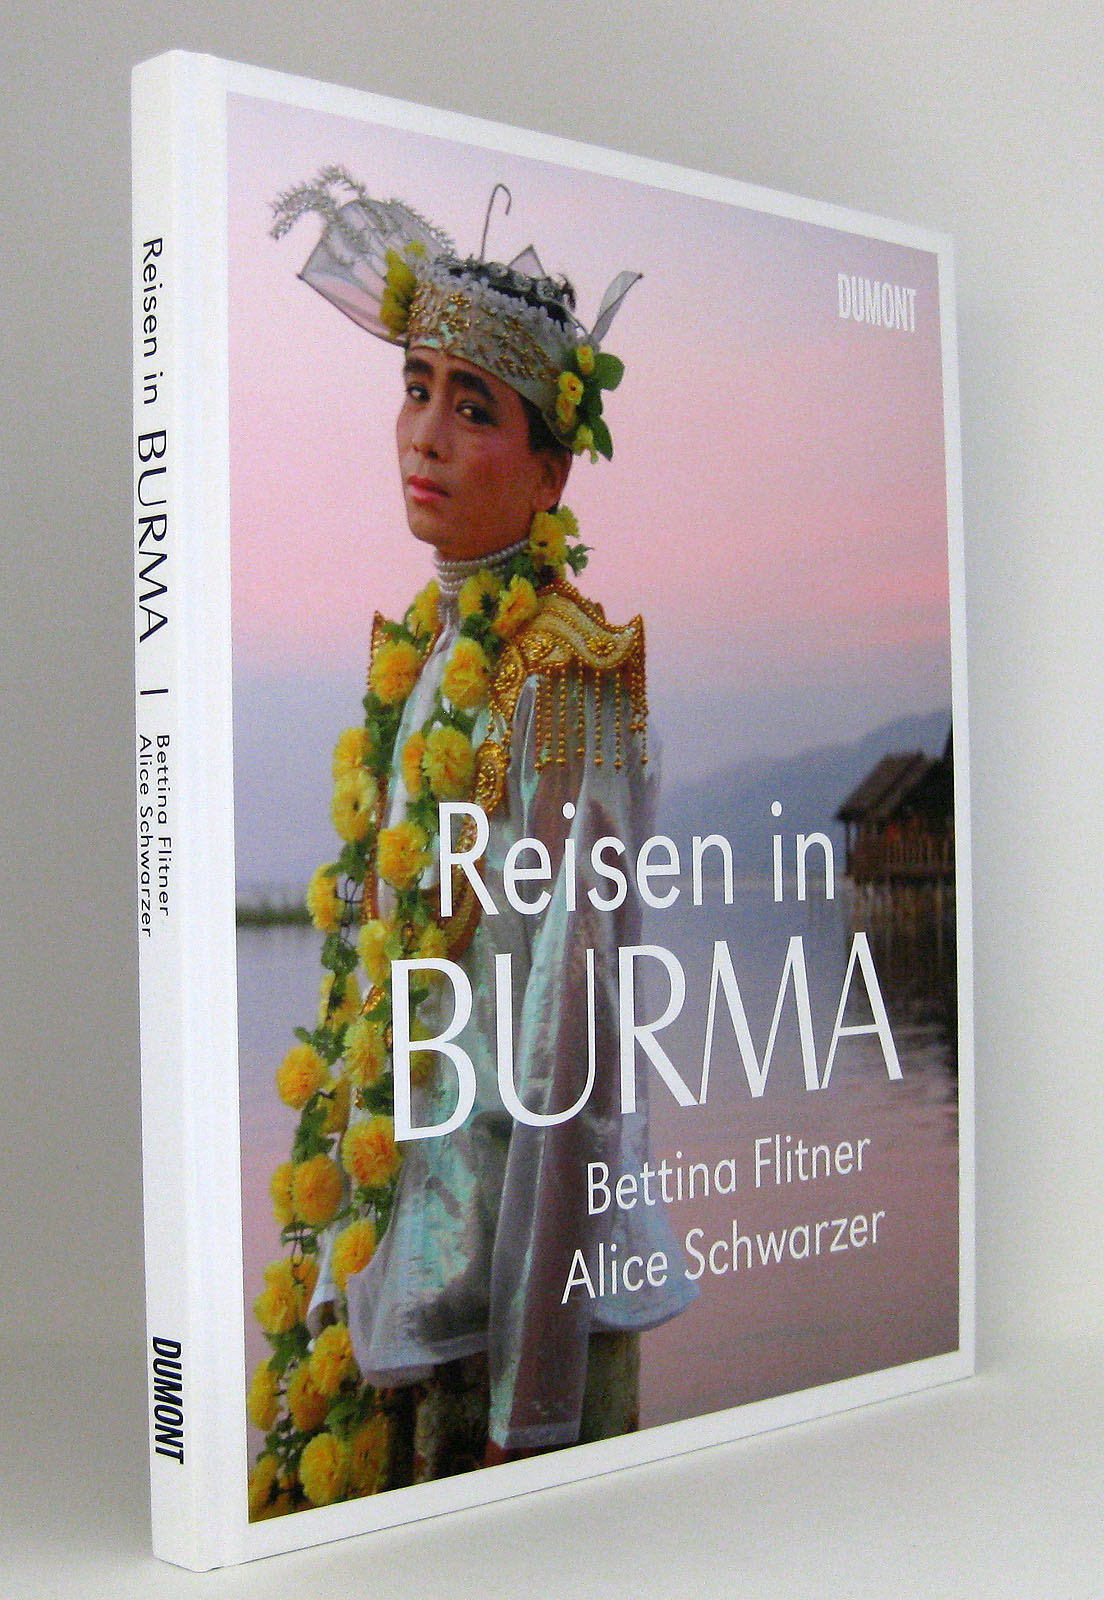 Reisen in Burma - Flitner, Bettina Schwarzer, Alice